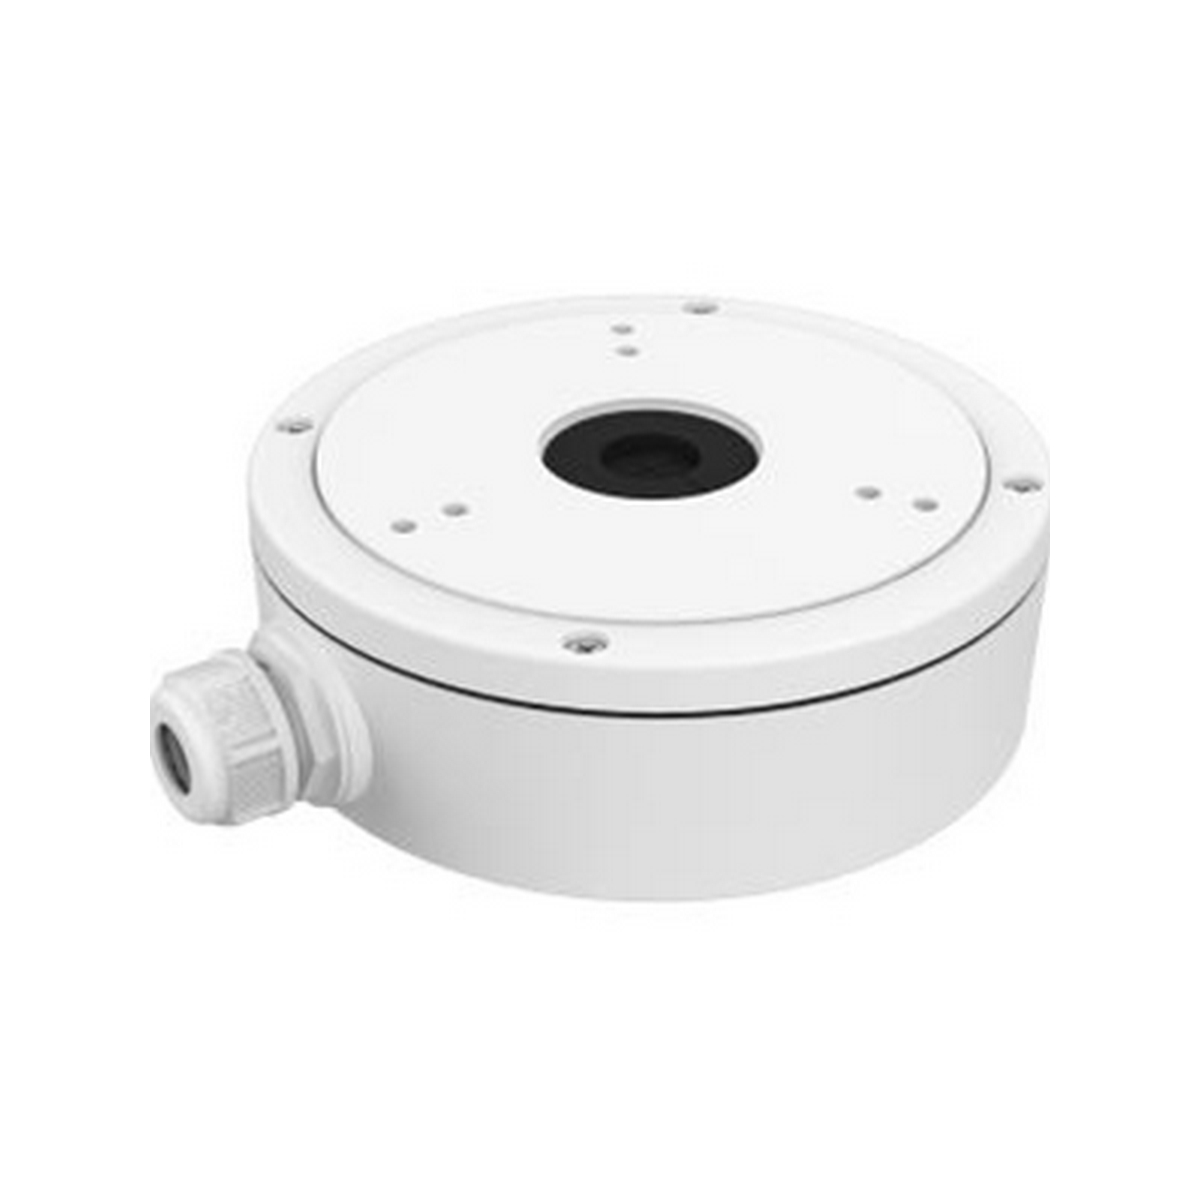 Hikvision Junction Box - Mount for DS-2CD23xx series cameras